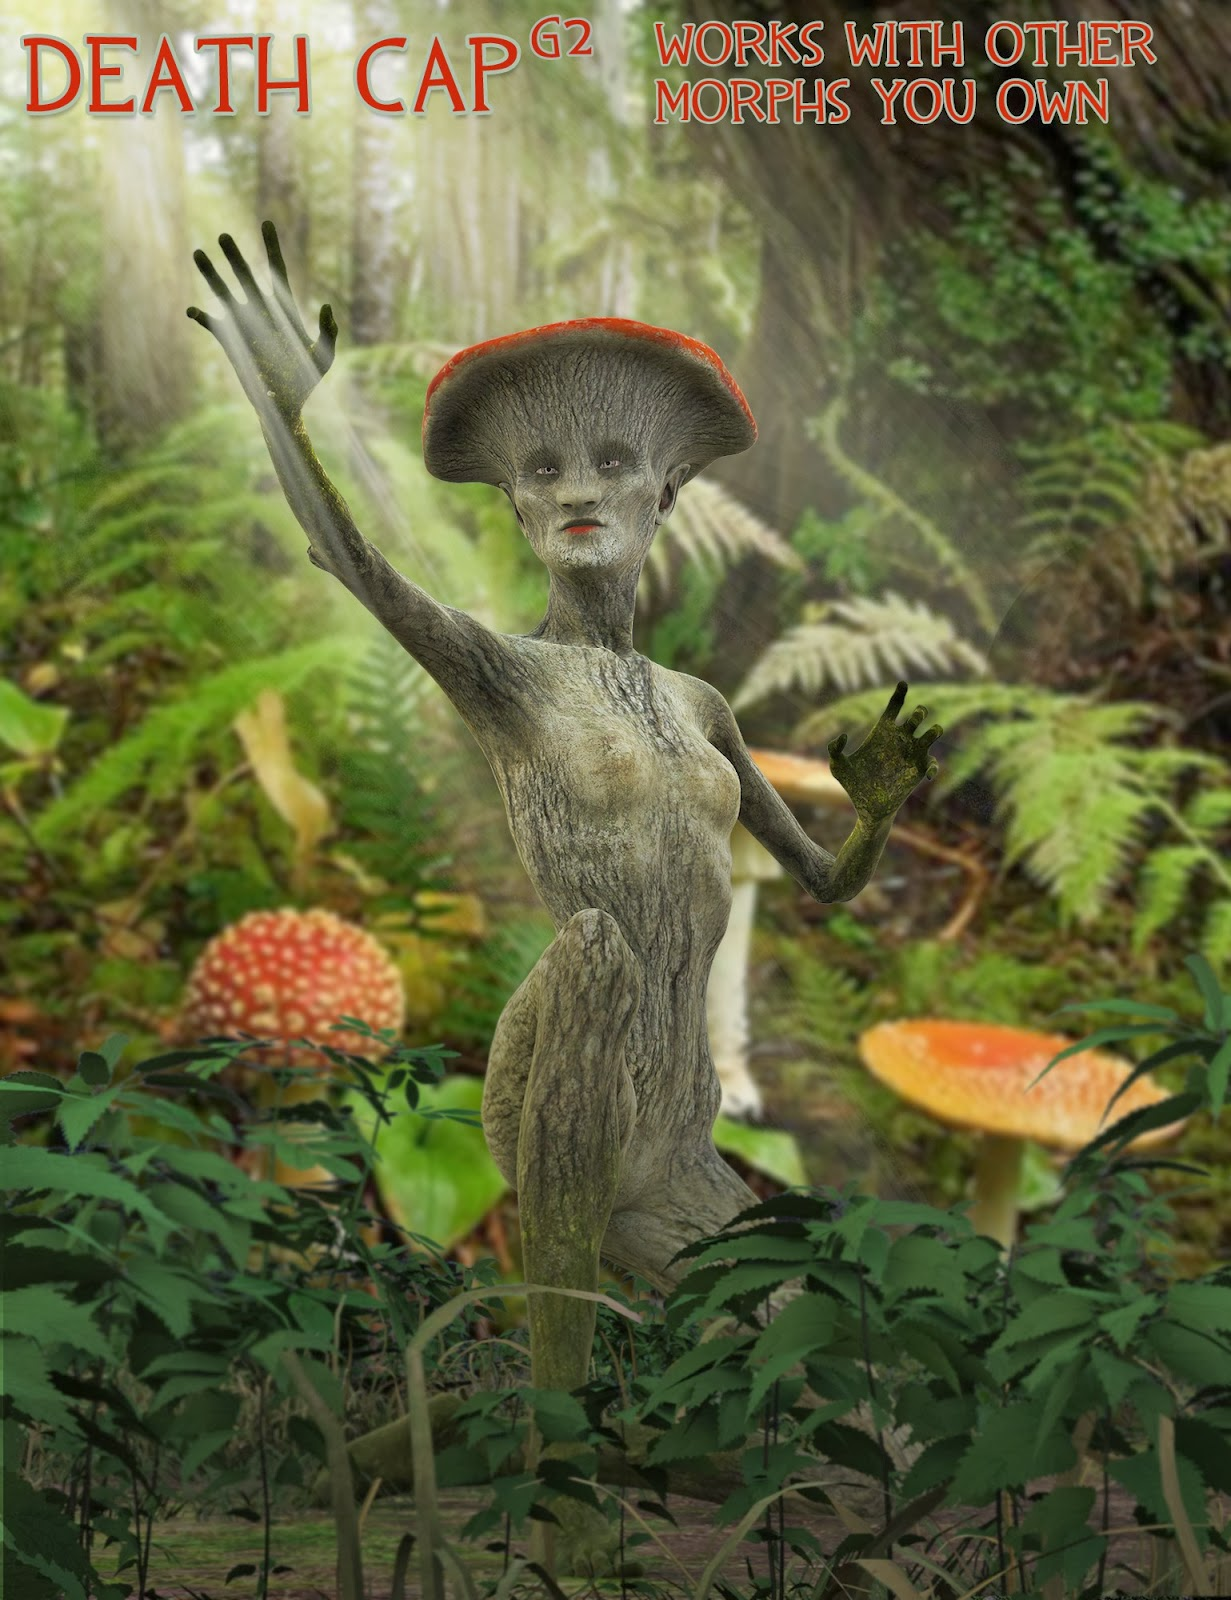 DAZ 3D - Death Cap HD